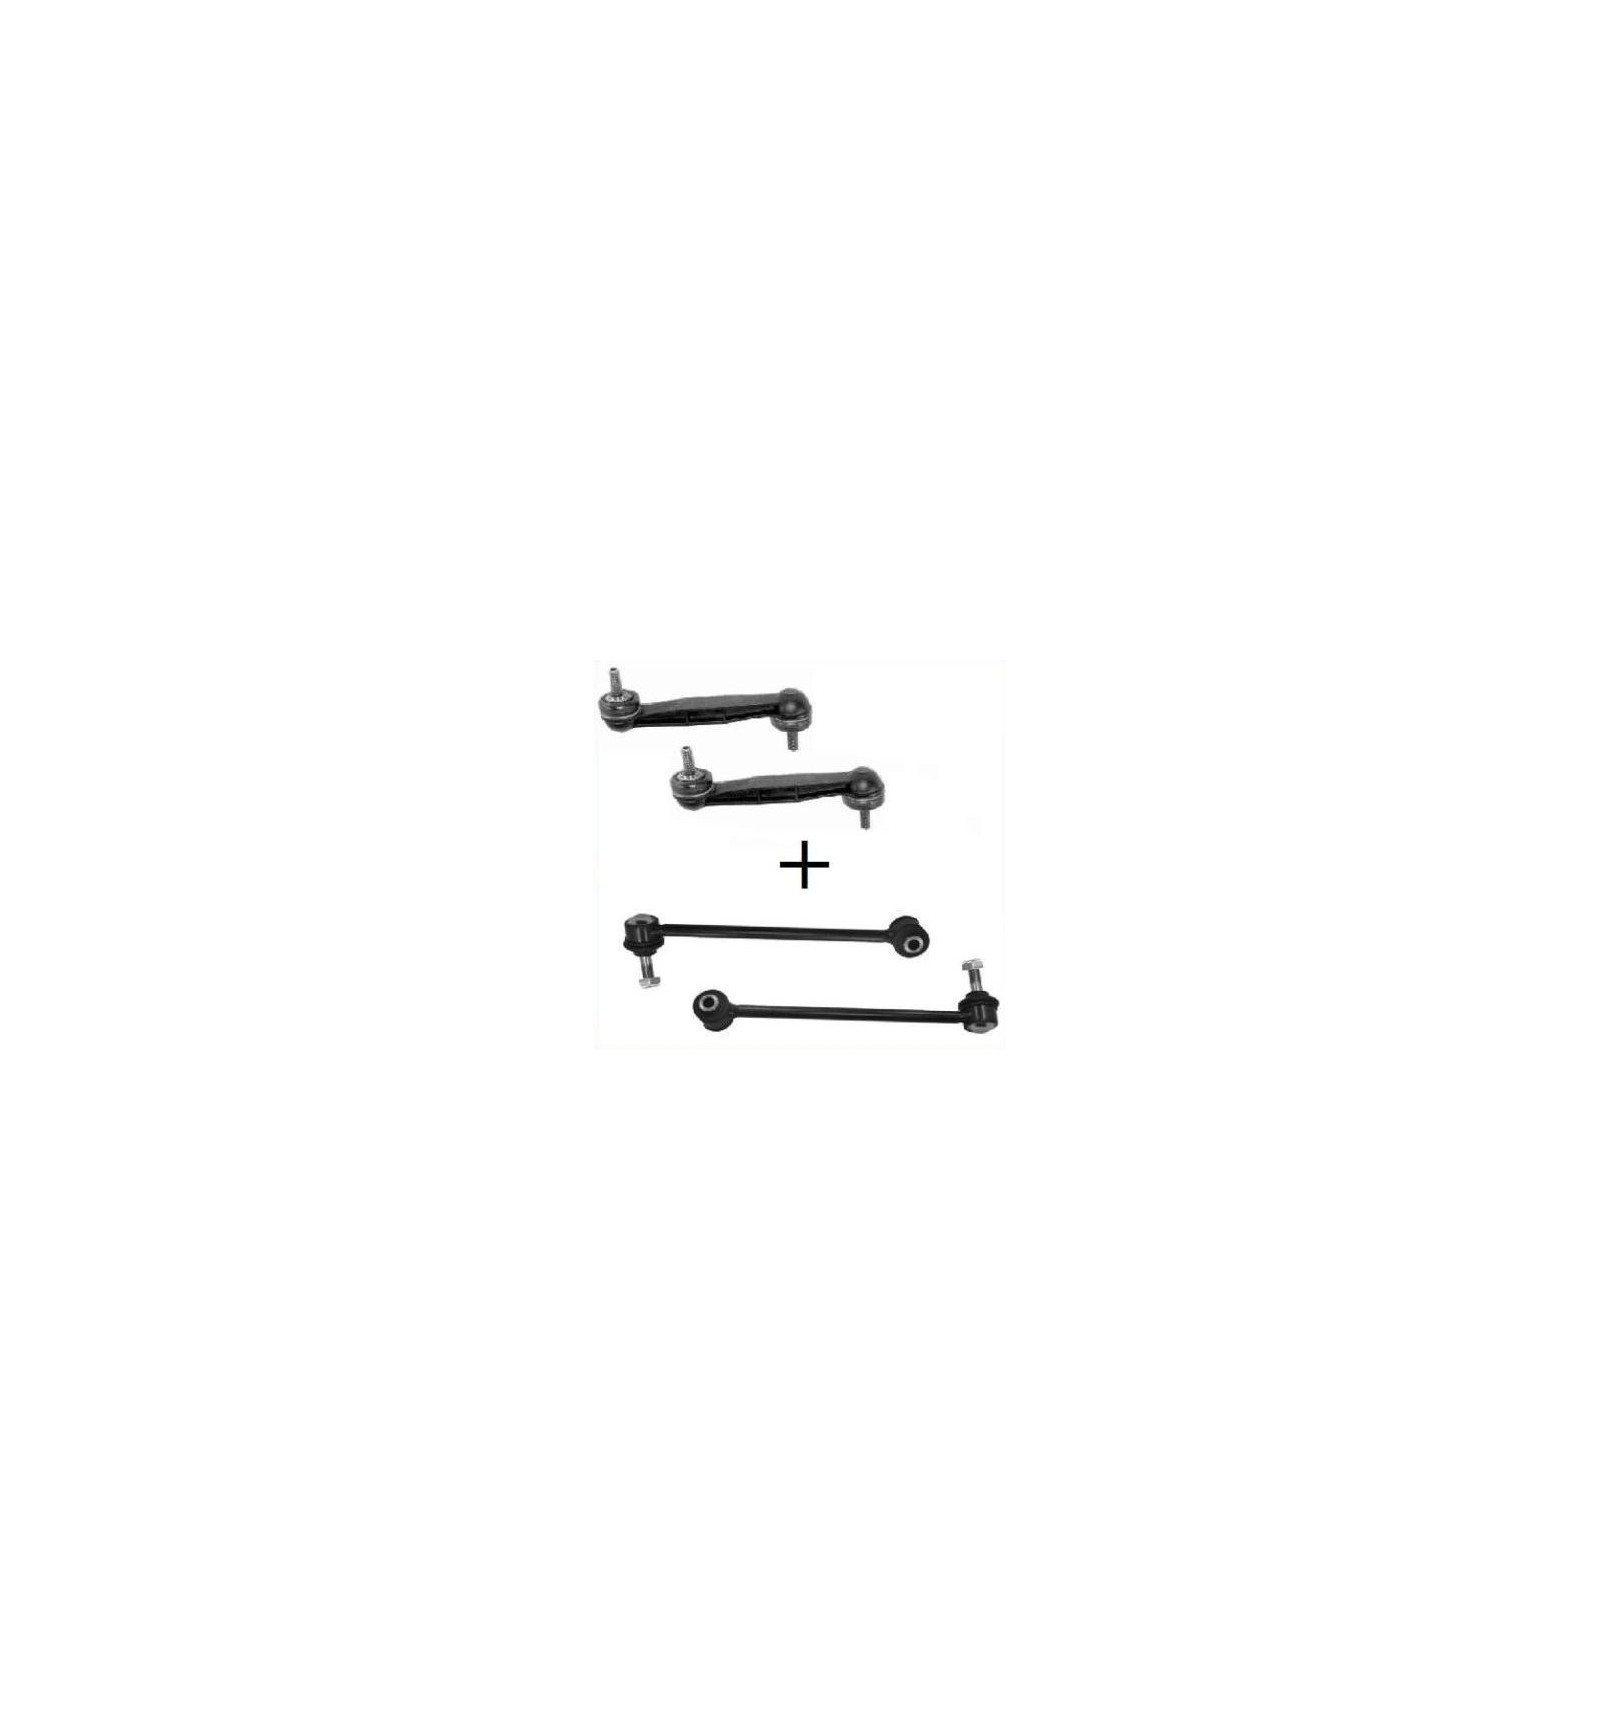 Lot de 4 Biellette de suspension Arrière Peugeot 406